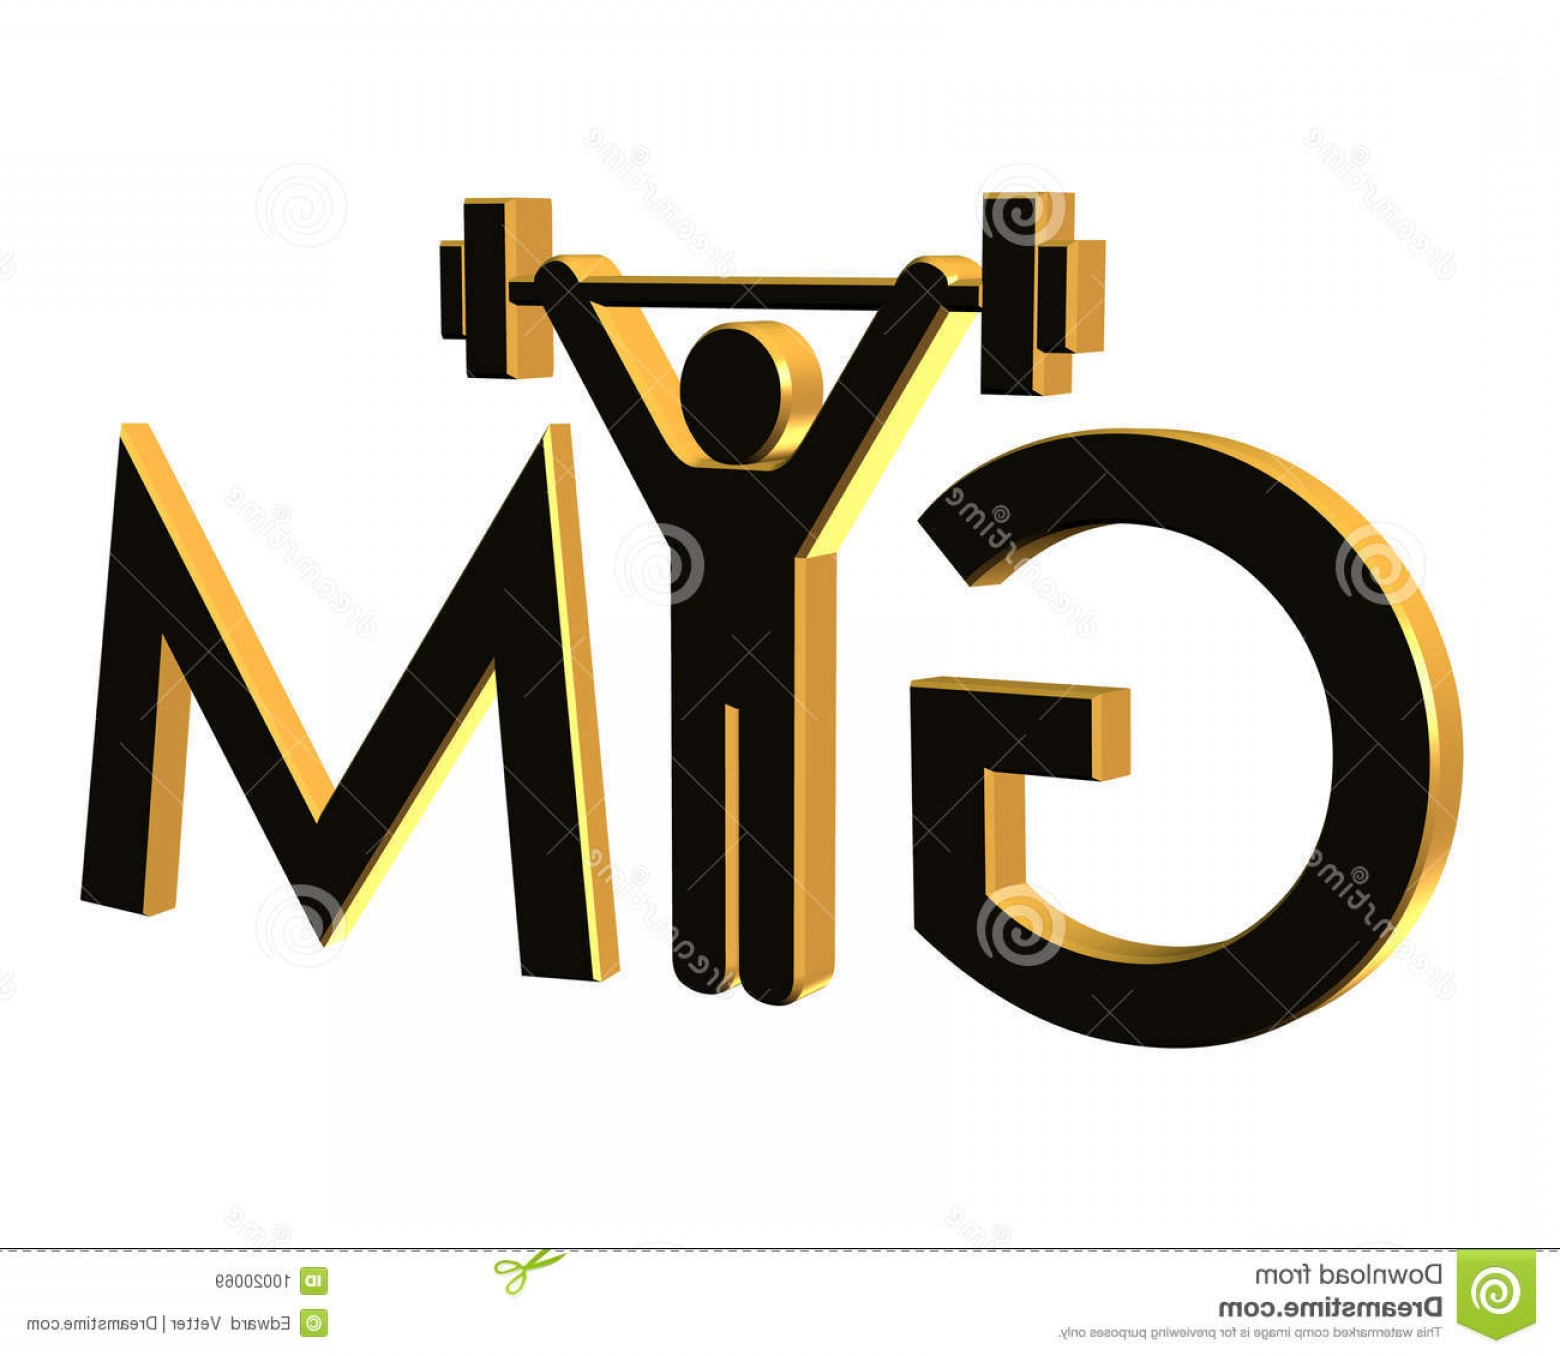 Gold Gym Vector: Royalty Free Stock Images Gym Fitness Logo D Isolated Image